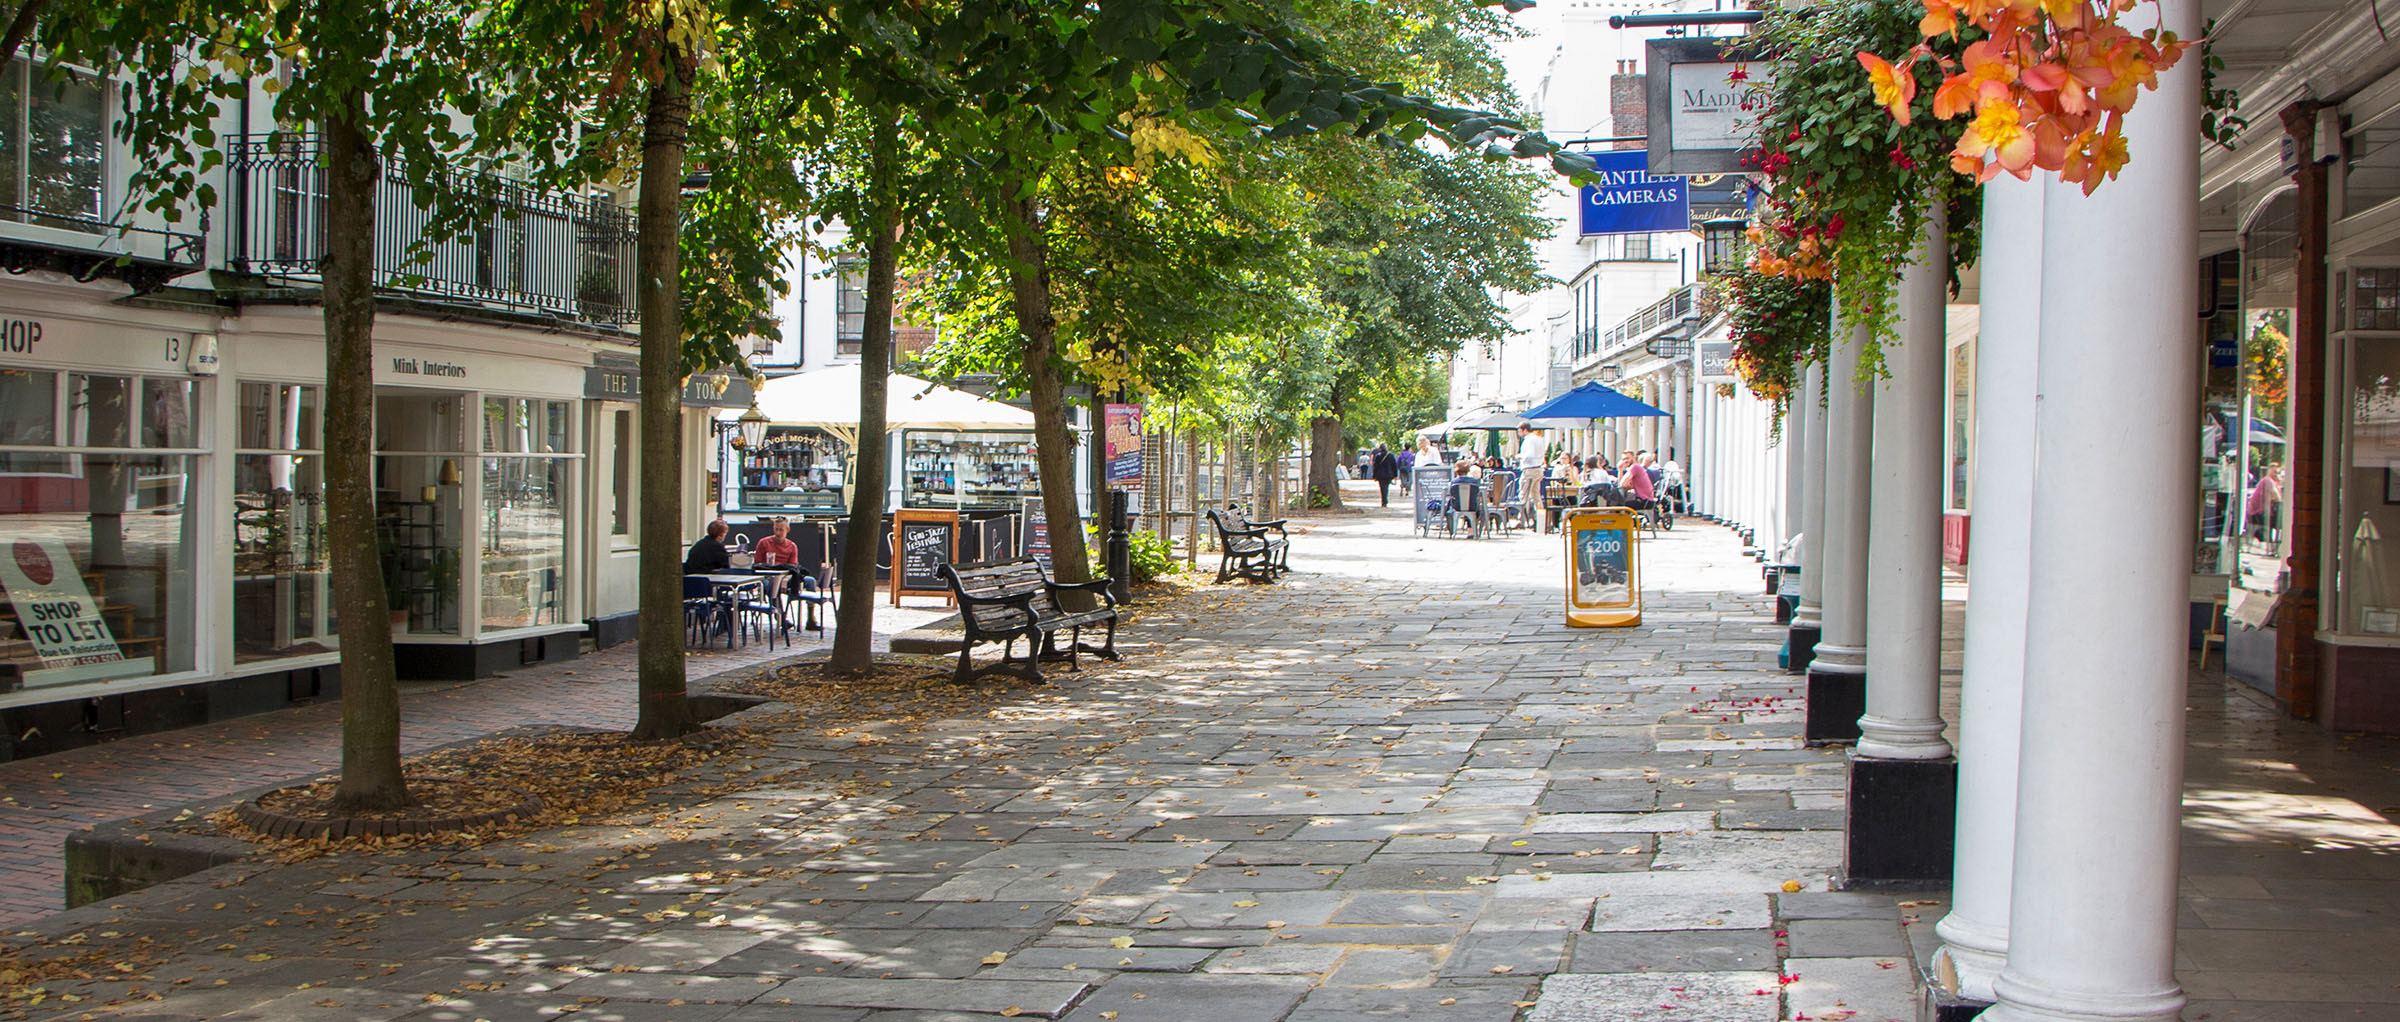 The Pantiles and the Chalybeate spring